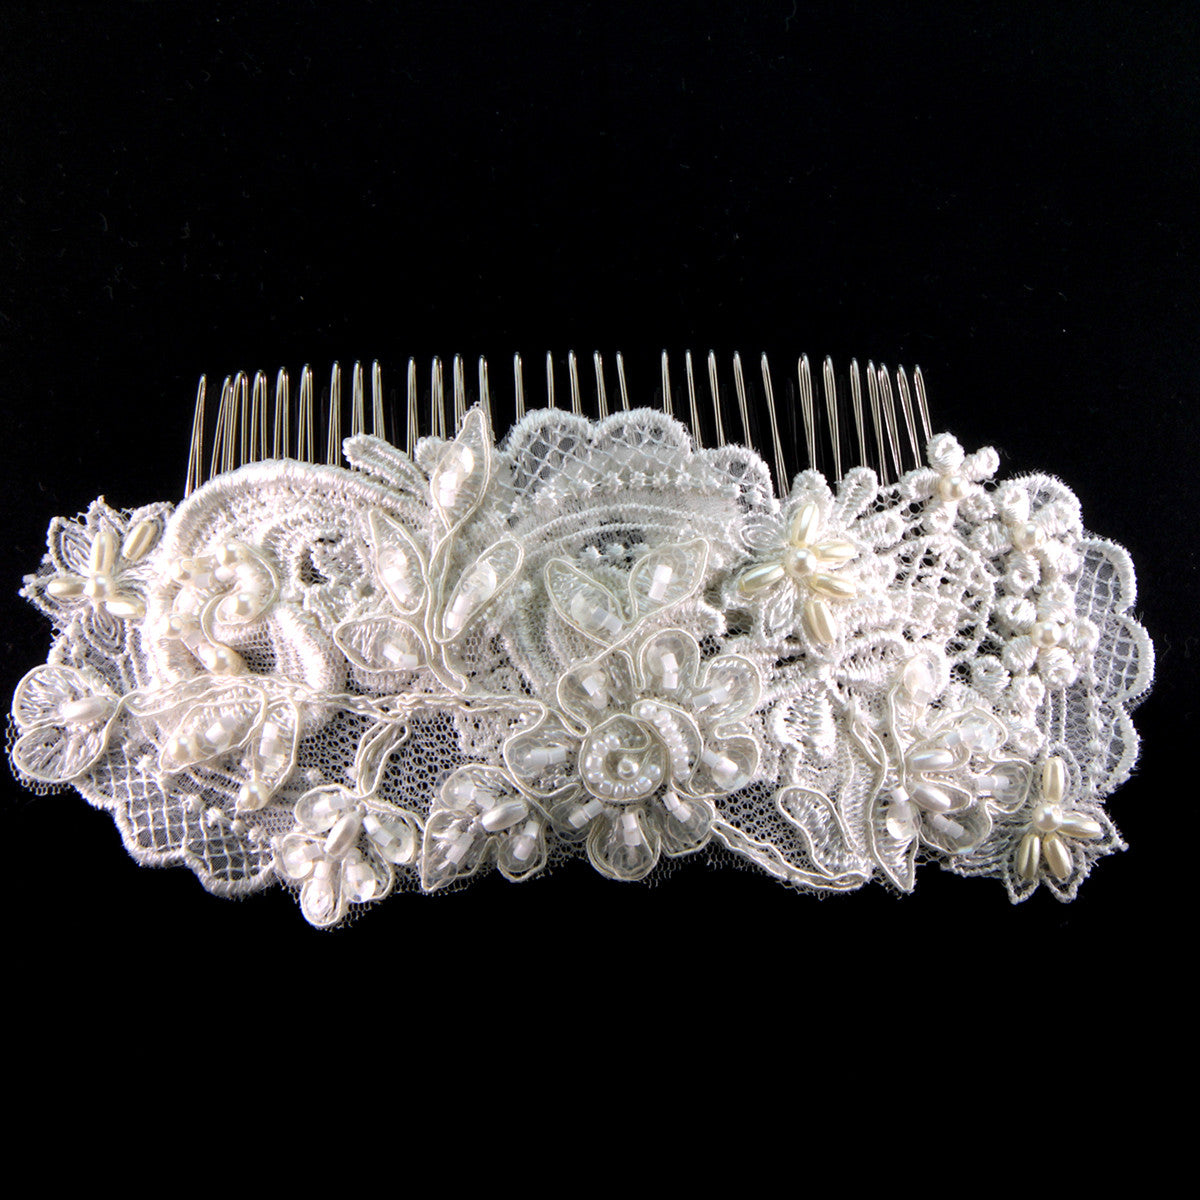 Melania Bridal Headpiece - Hair Accessories - Hair Comb - Roman & French